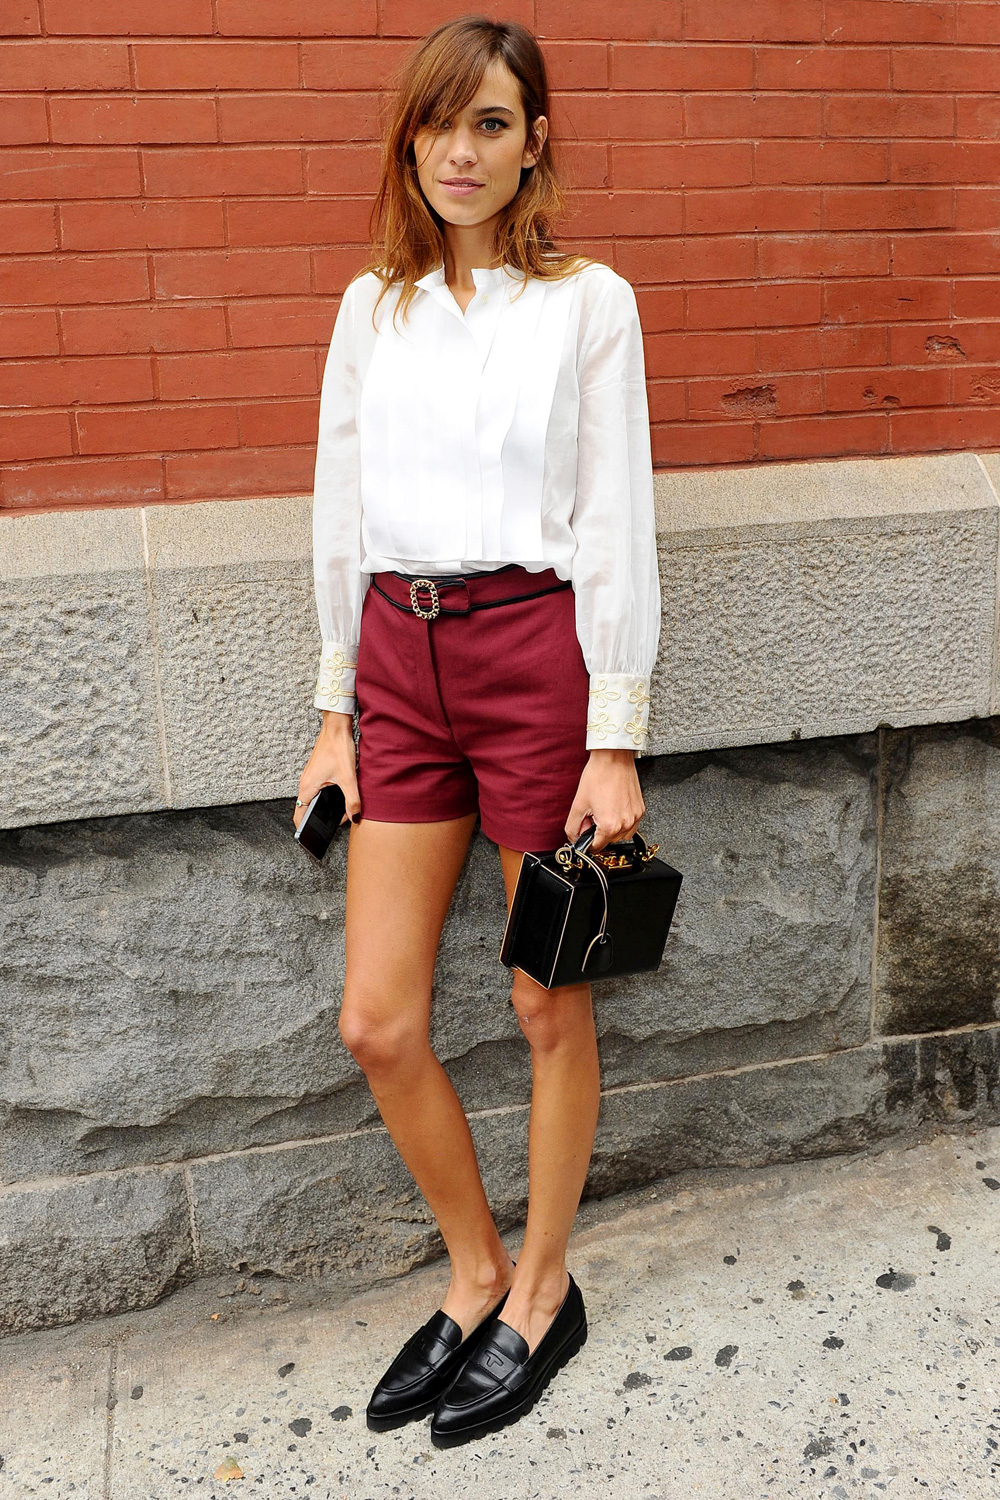 Alexa Chung bringing back penny loafers | Girlfriend is Better